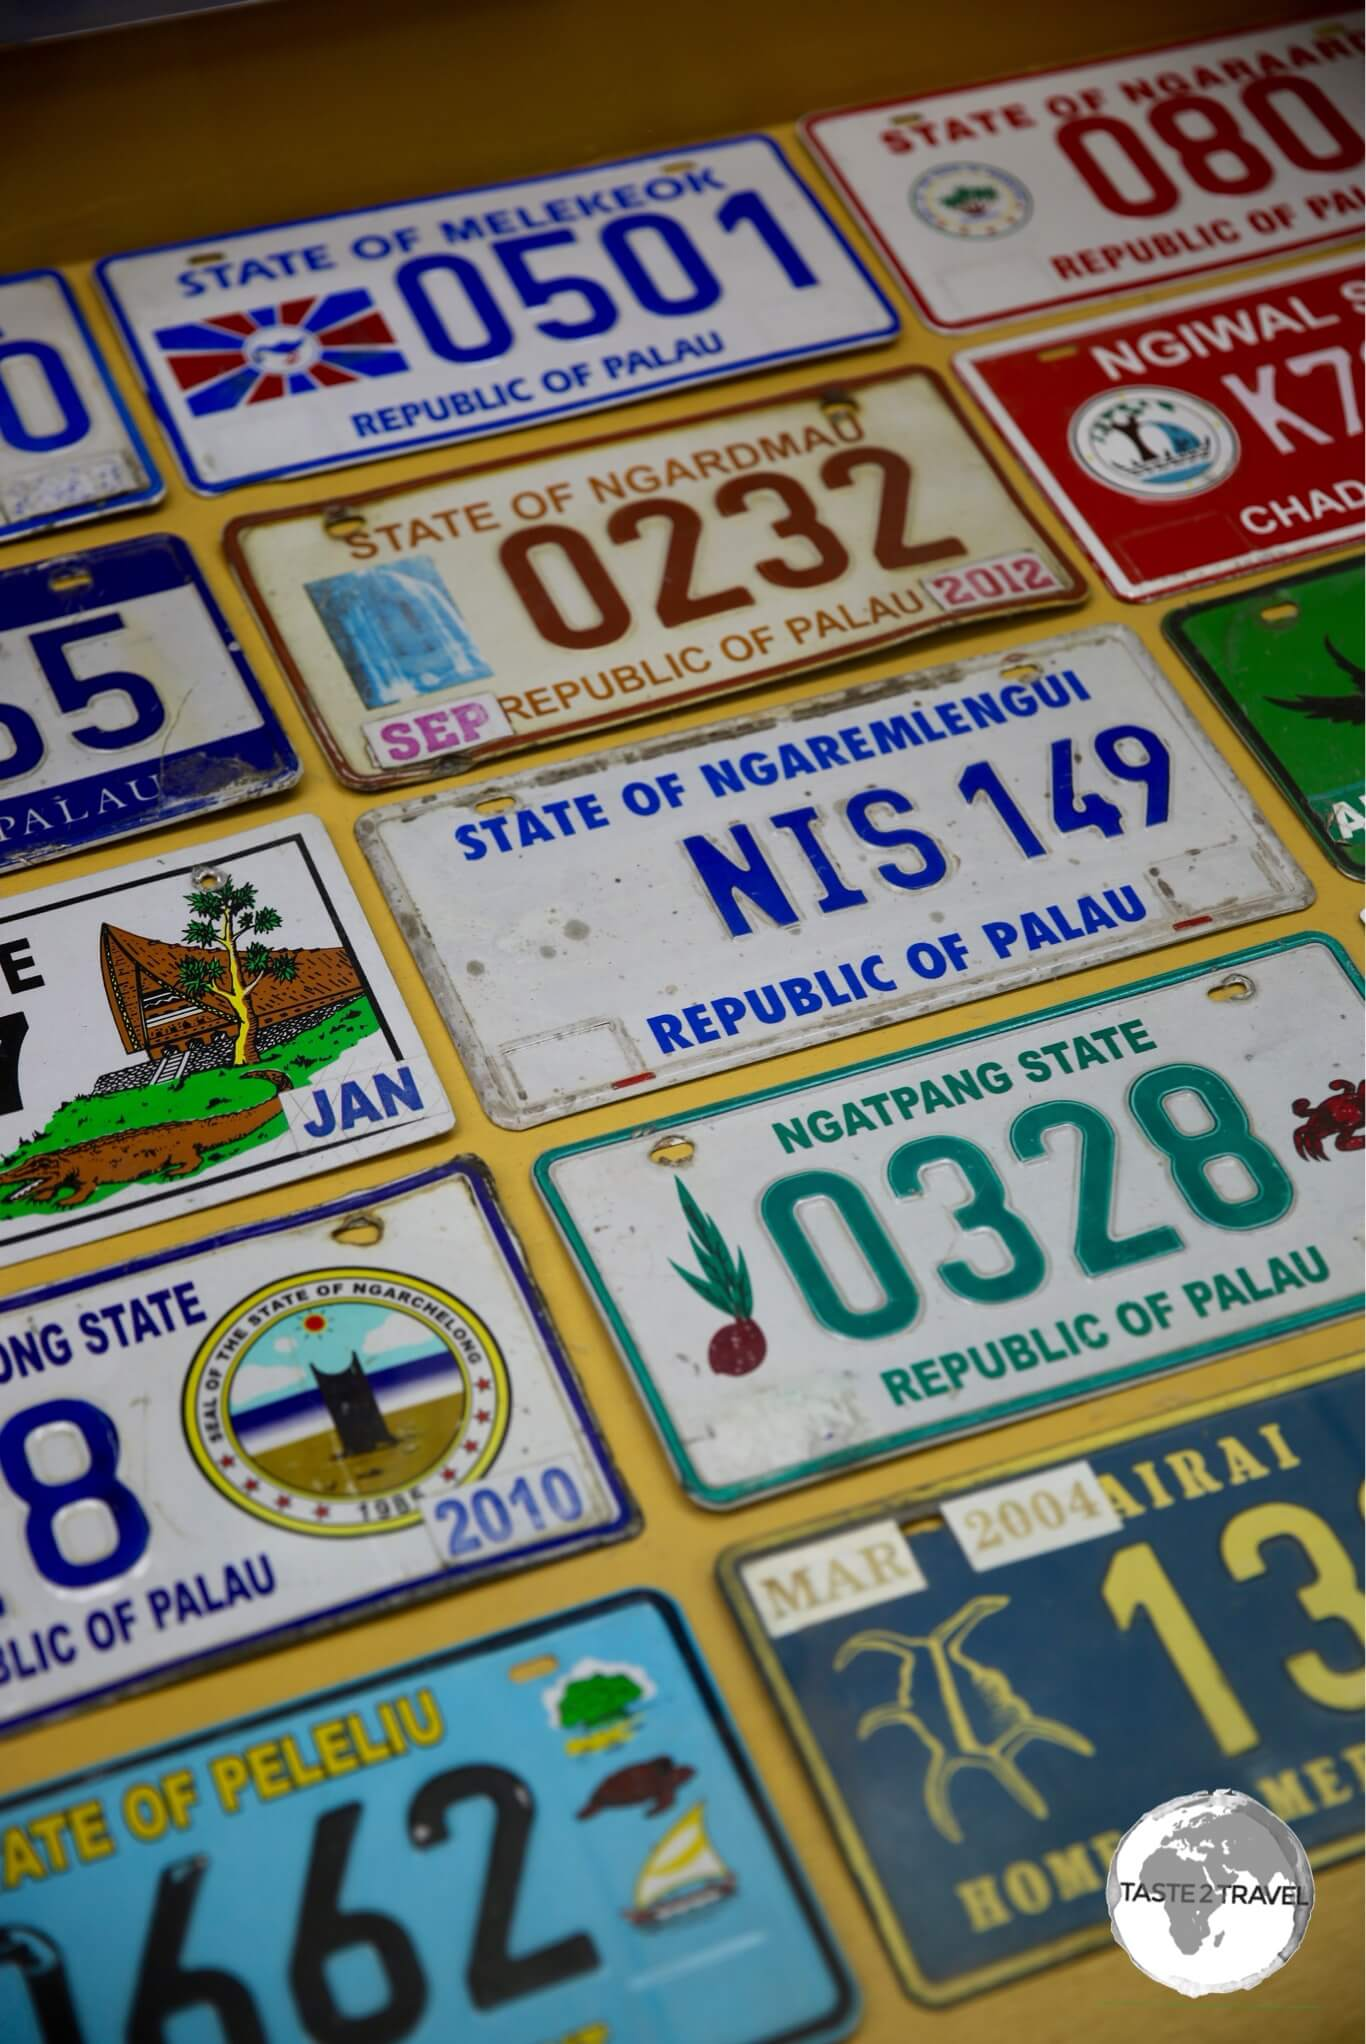 Palau is divided into sixteen states (most states have just a few hundred residents) with each state having their own number plate.